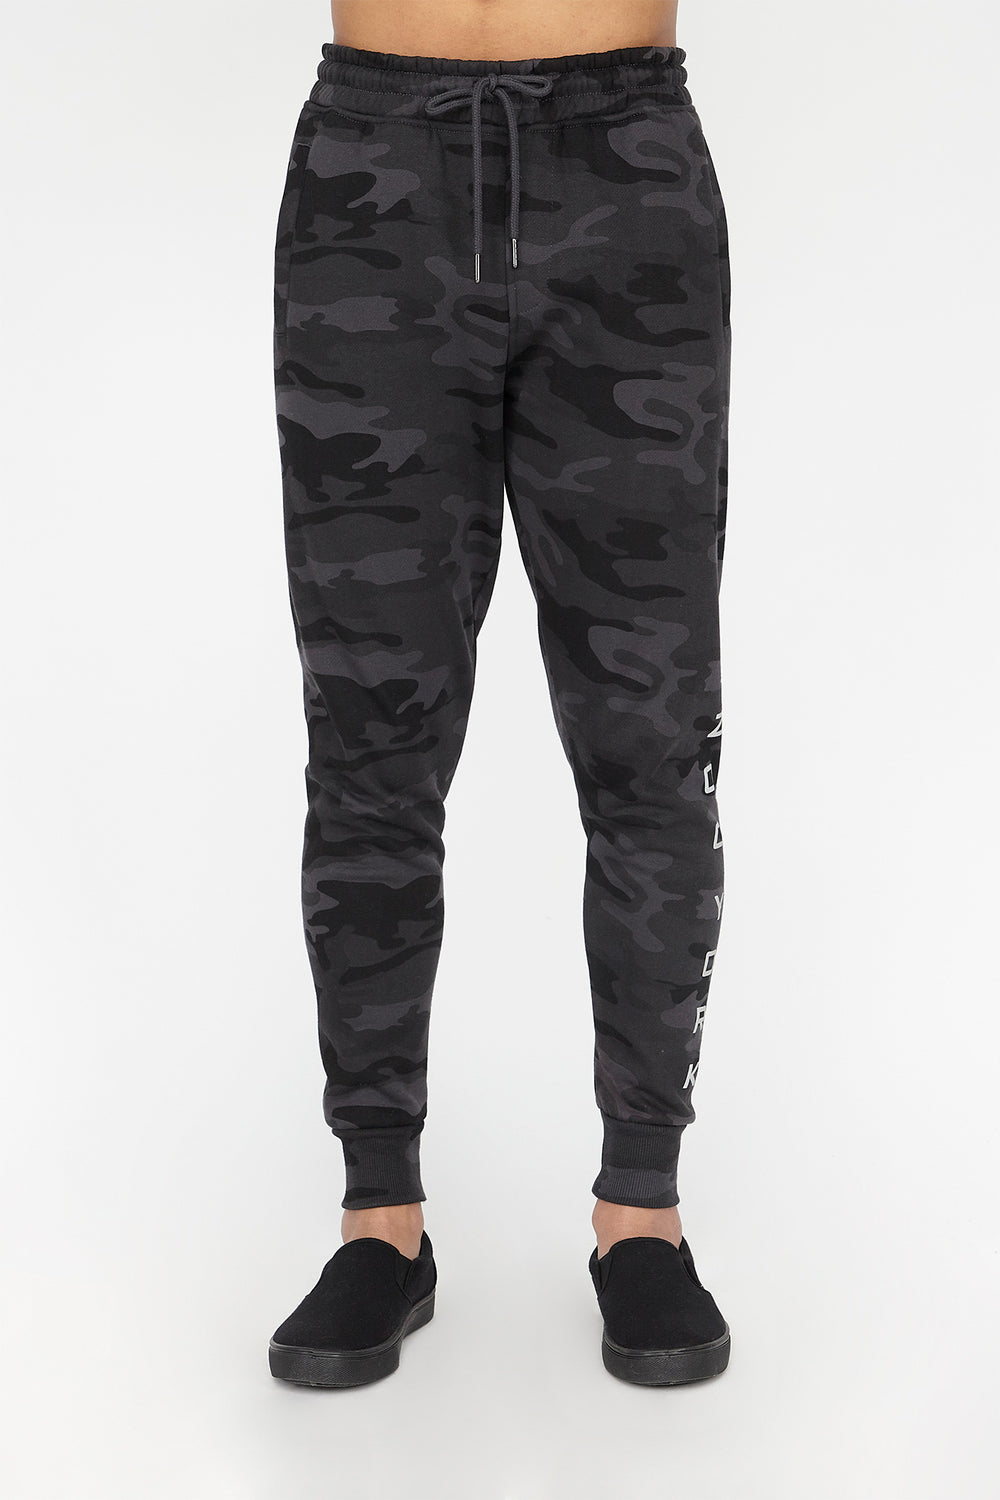 Zoo York Mens Camo Print Jogger Black with White